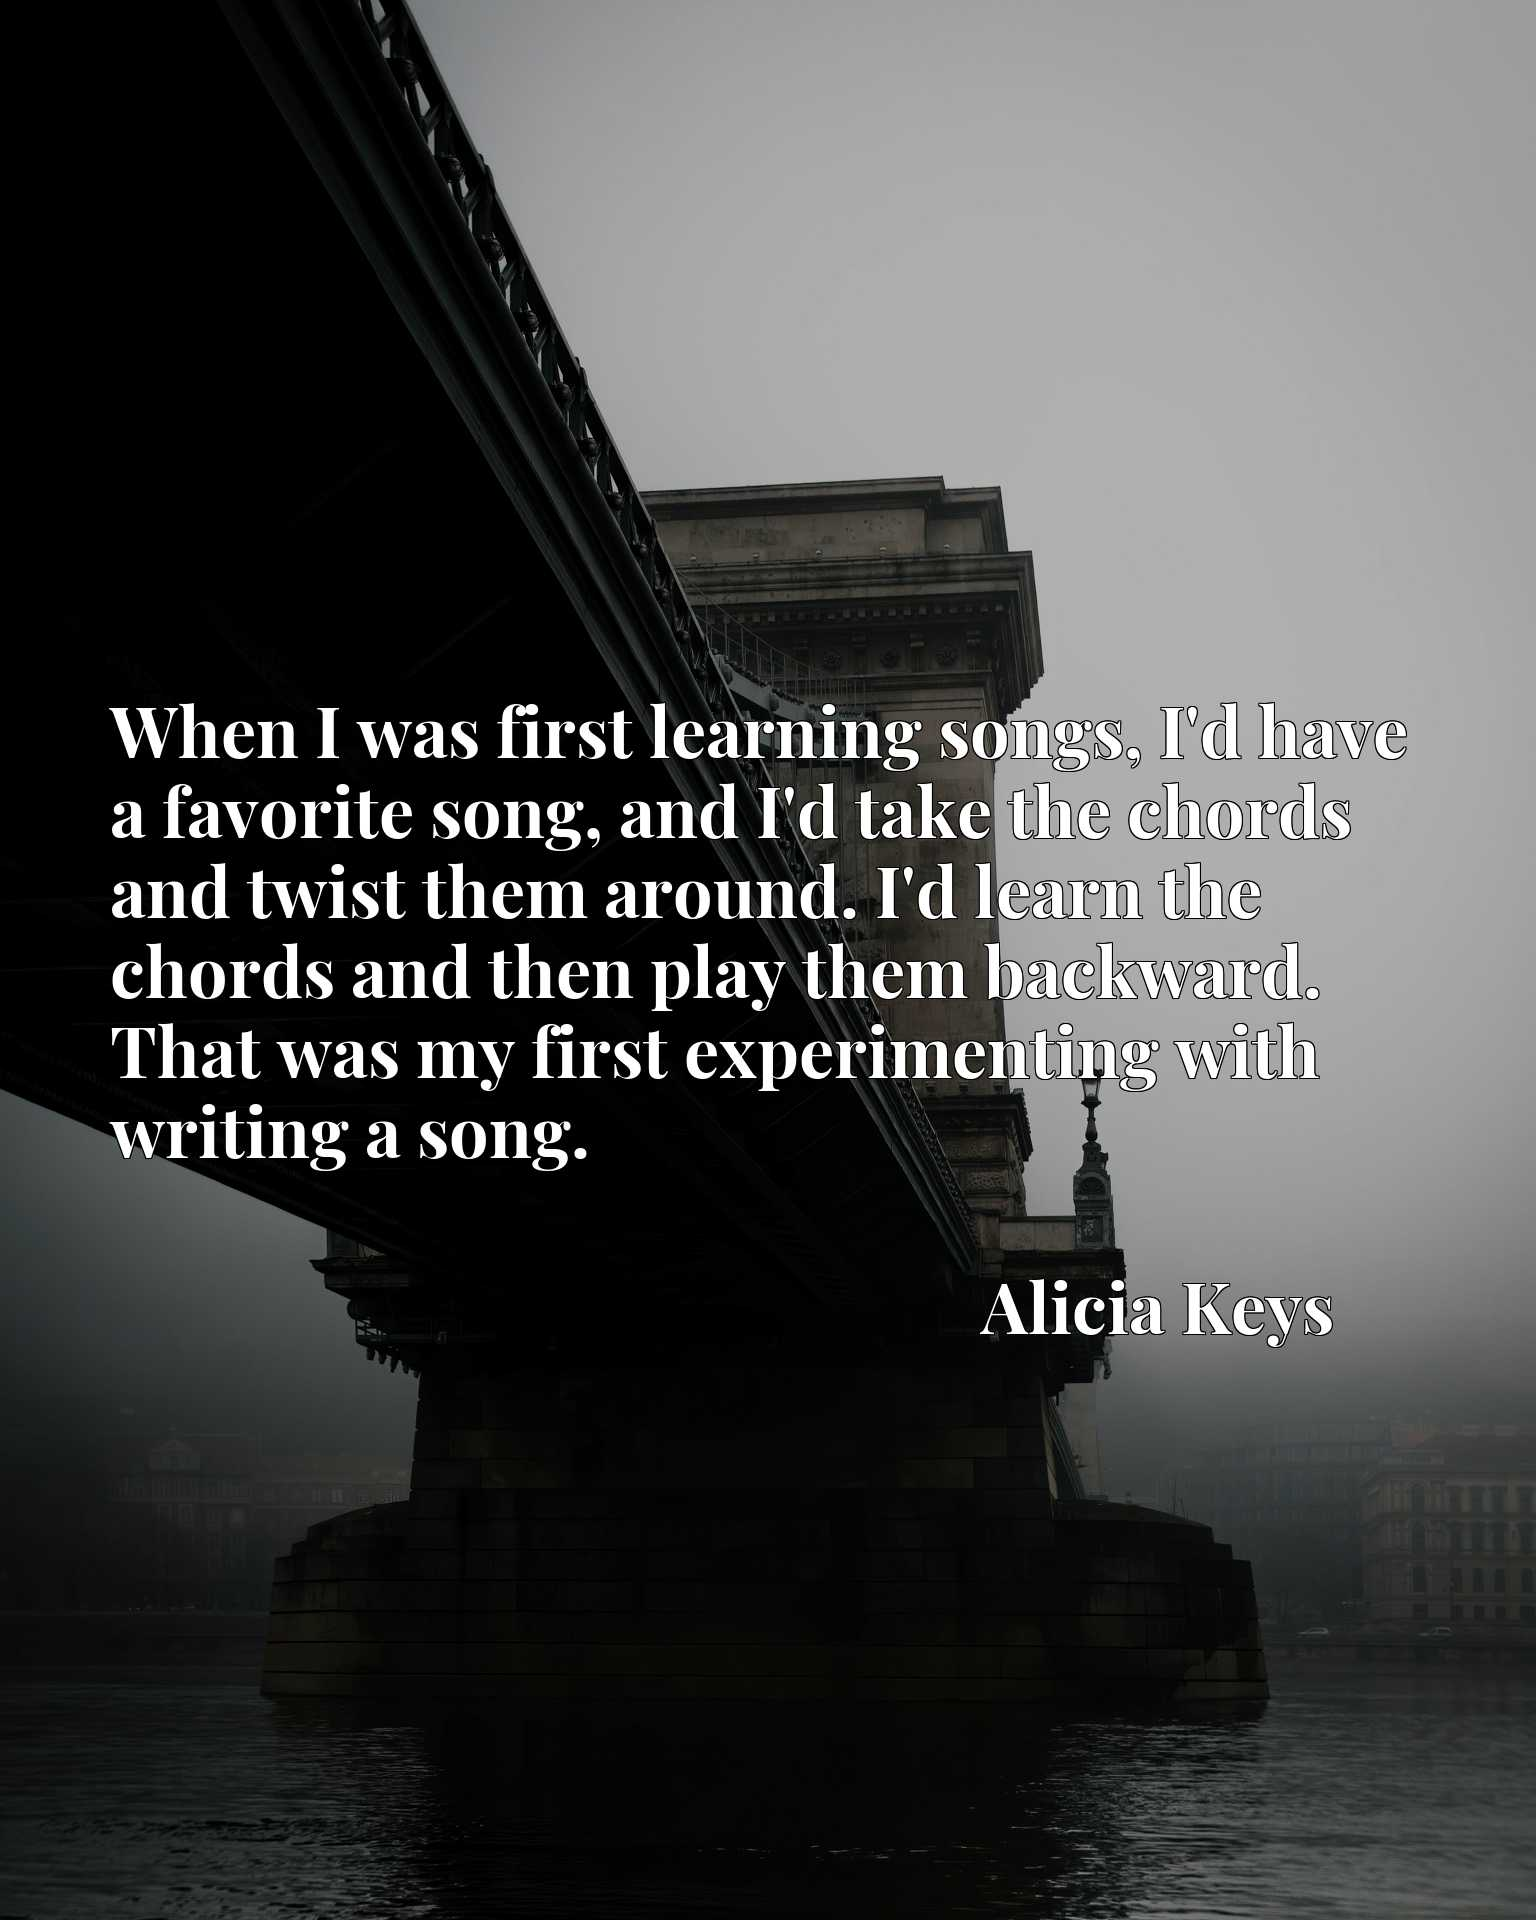 When I was first learning songs, I'd have a favorite song, and I'd take the chords and twist them around. I'd learn the chords and then play them backward. That was my first experimenting with writing a song.